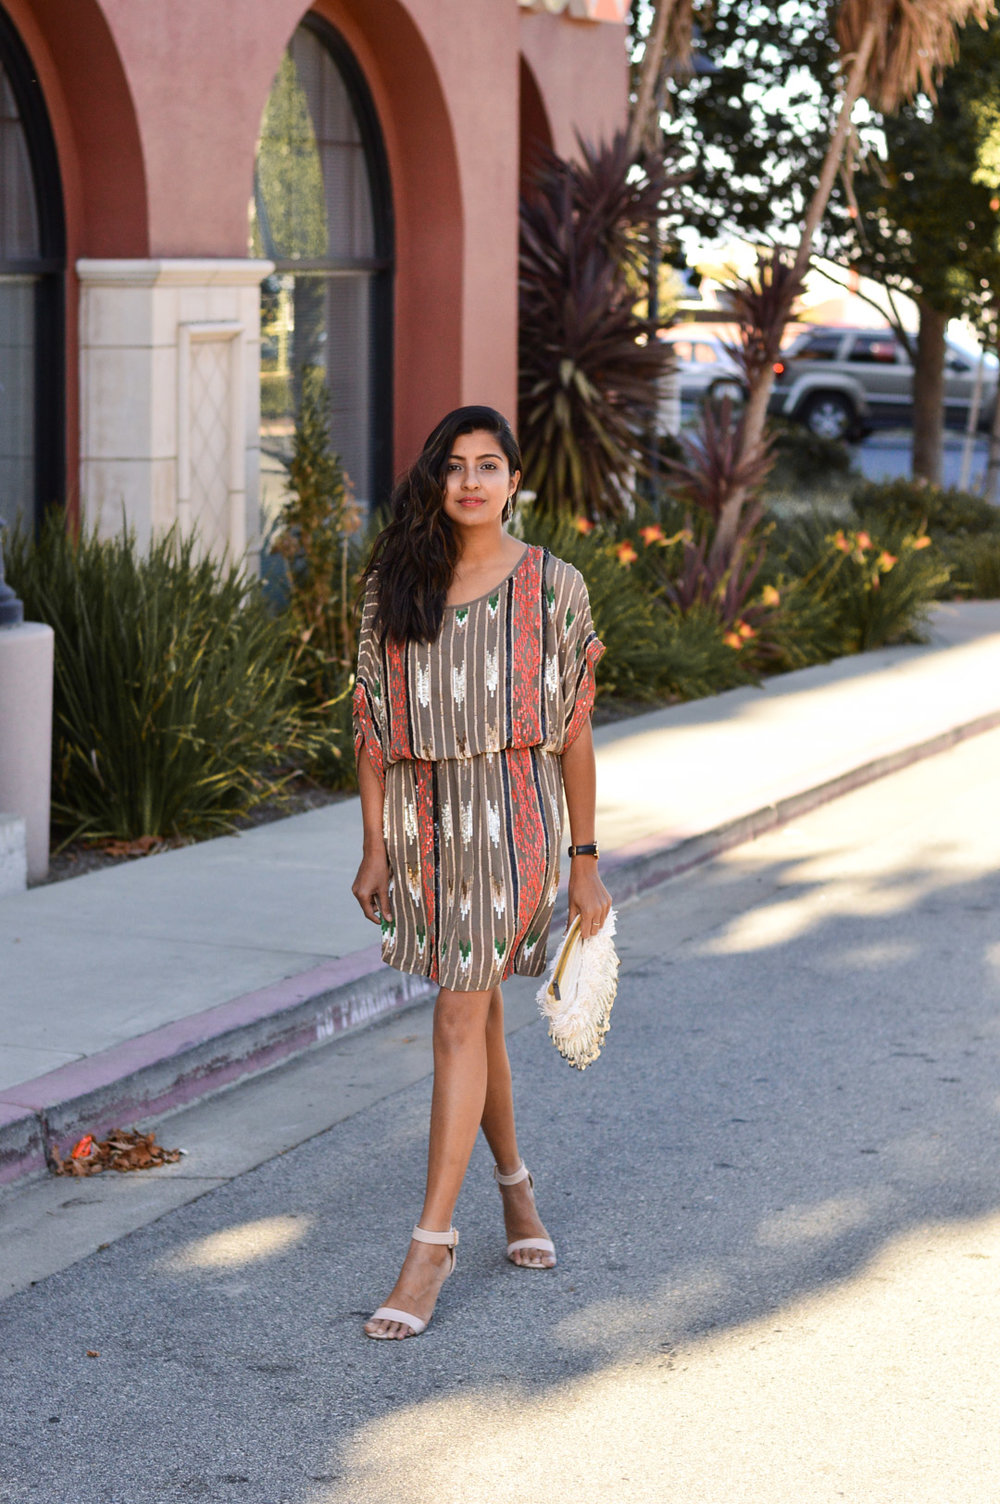 sequins-dress-NYE-party-blogger-outfit-fashion 8